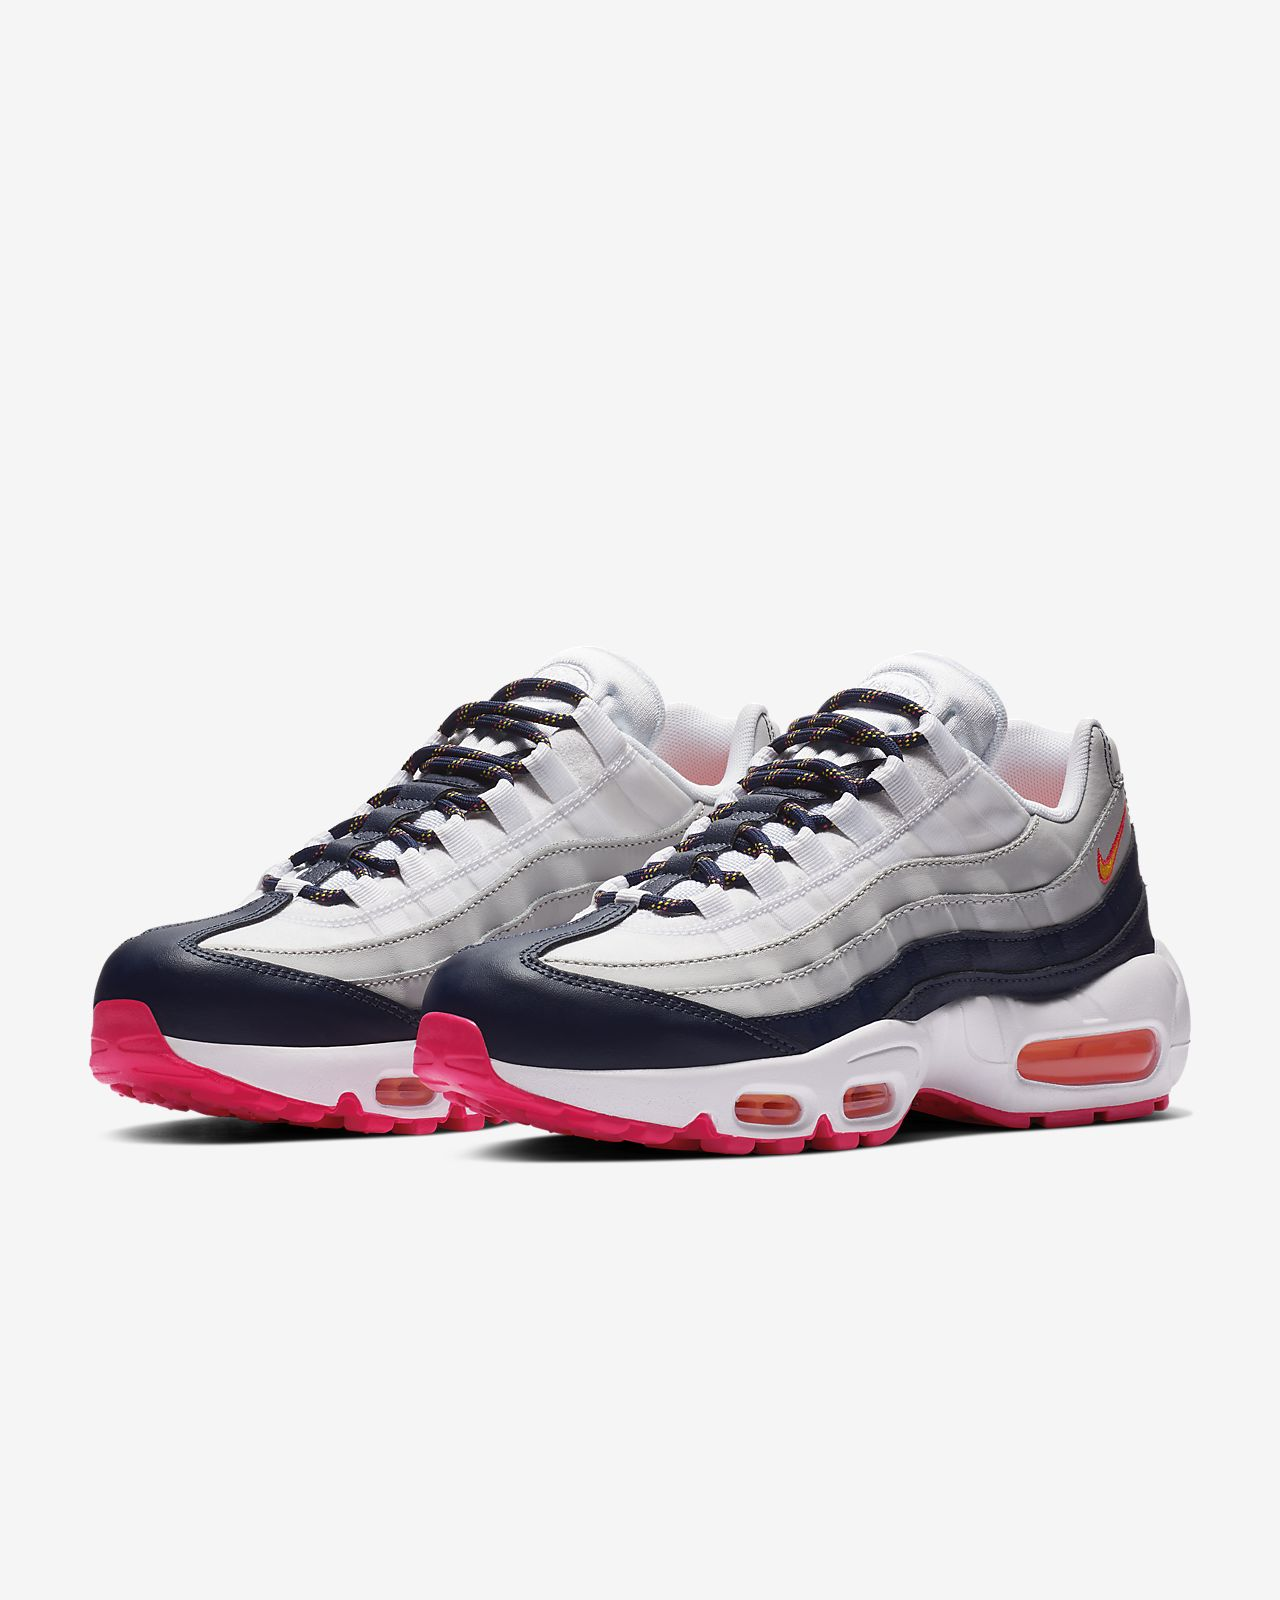 huge discount c1792 e2643 ... Nike Air Max 95 Premium Women s Shoe